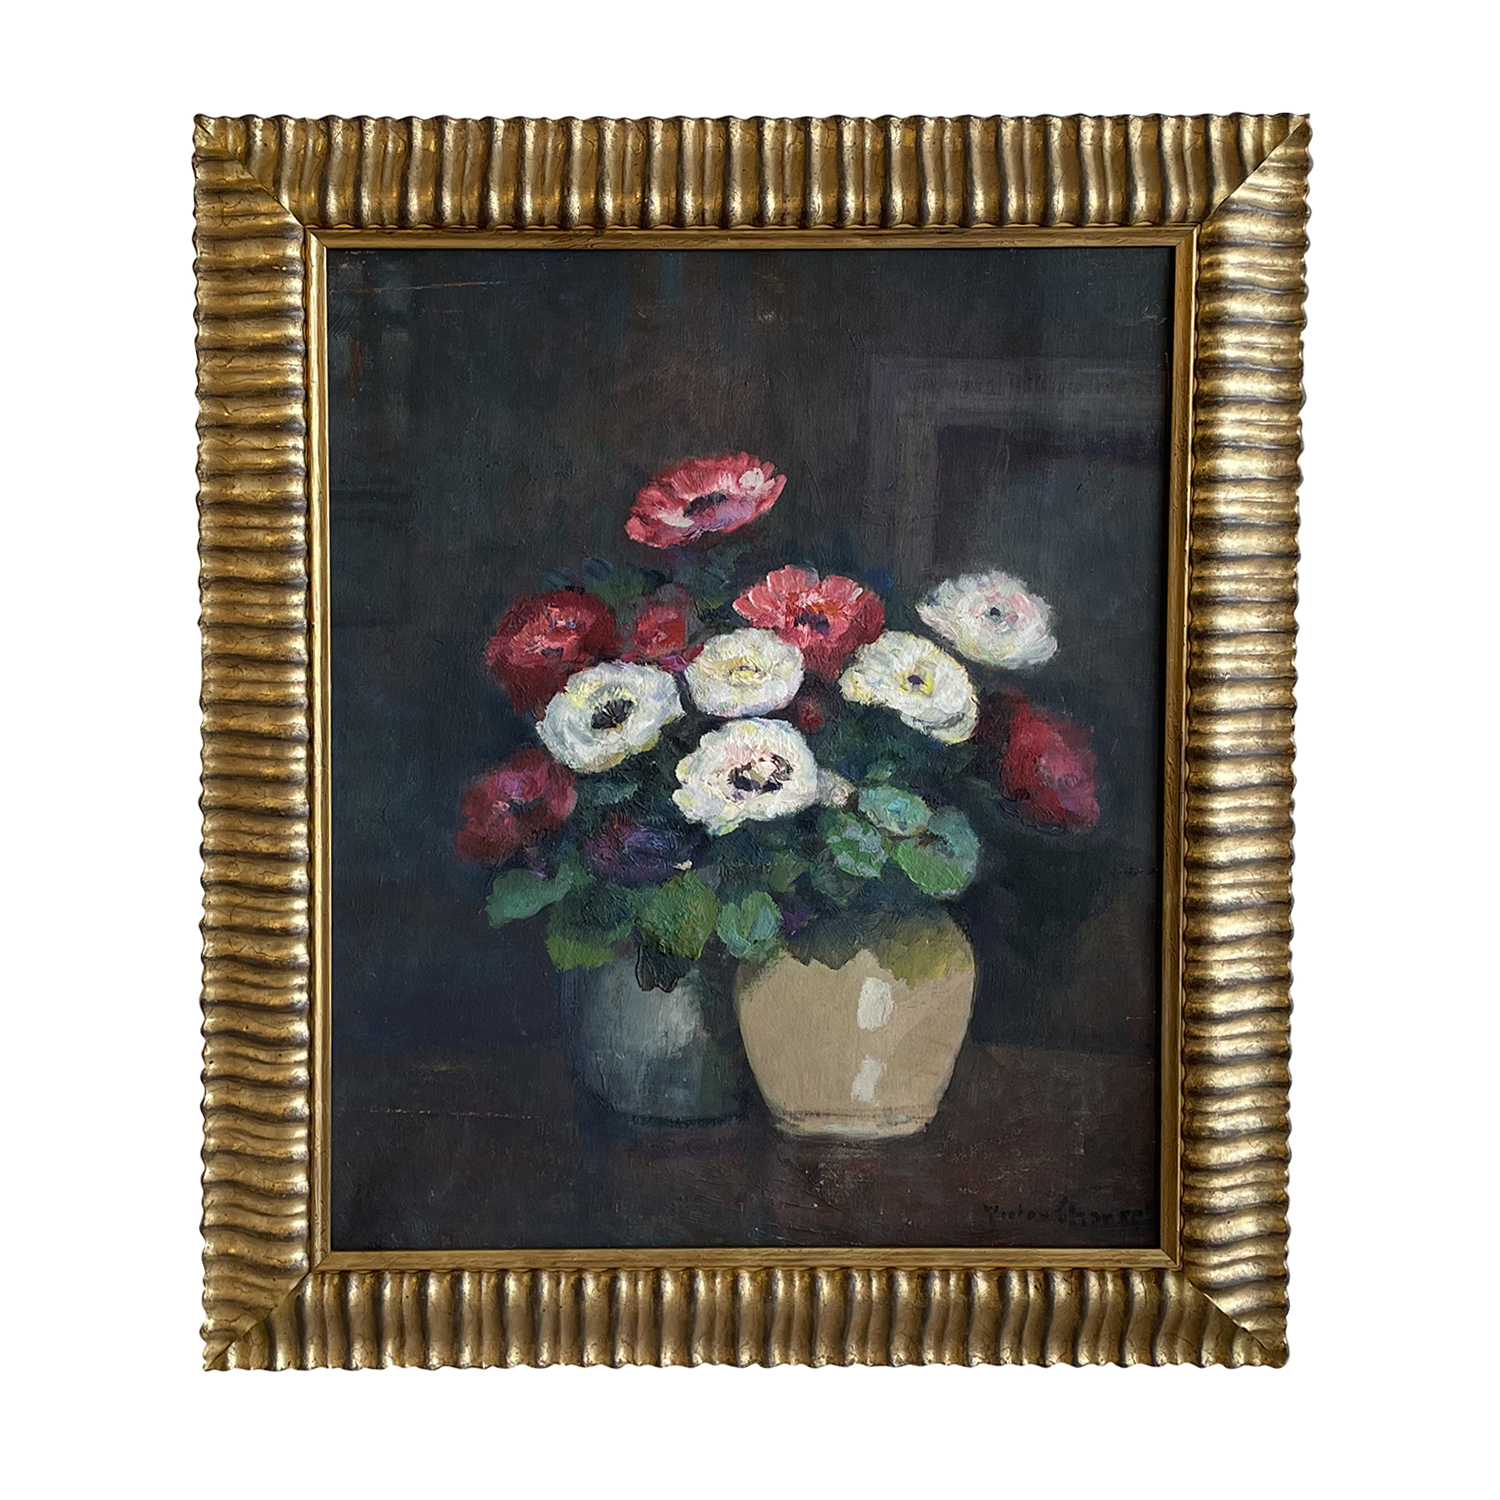 20th Century French Oil Painting of Vases with Anemones by Victor Charreton